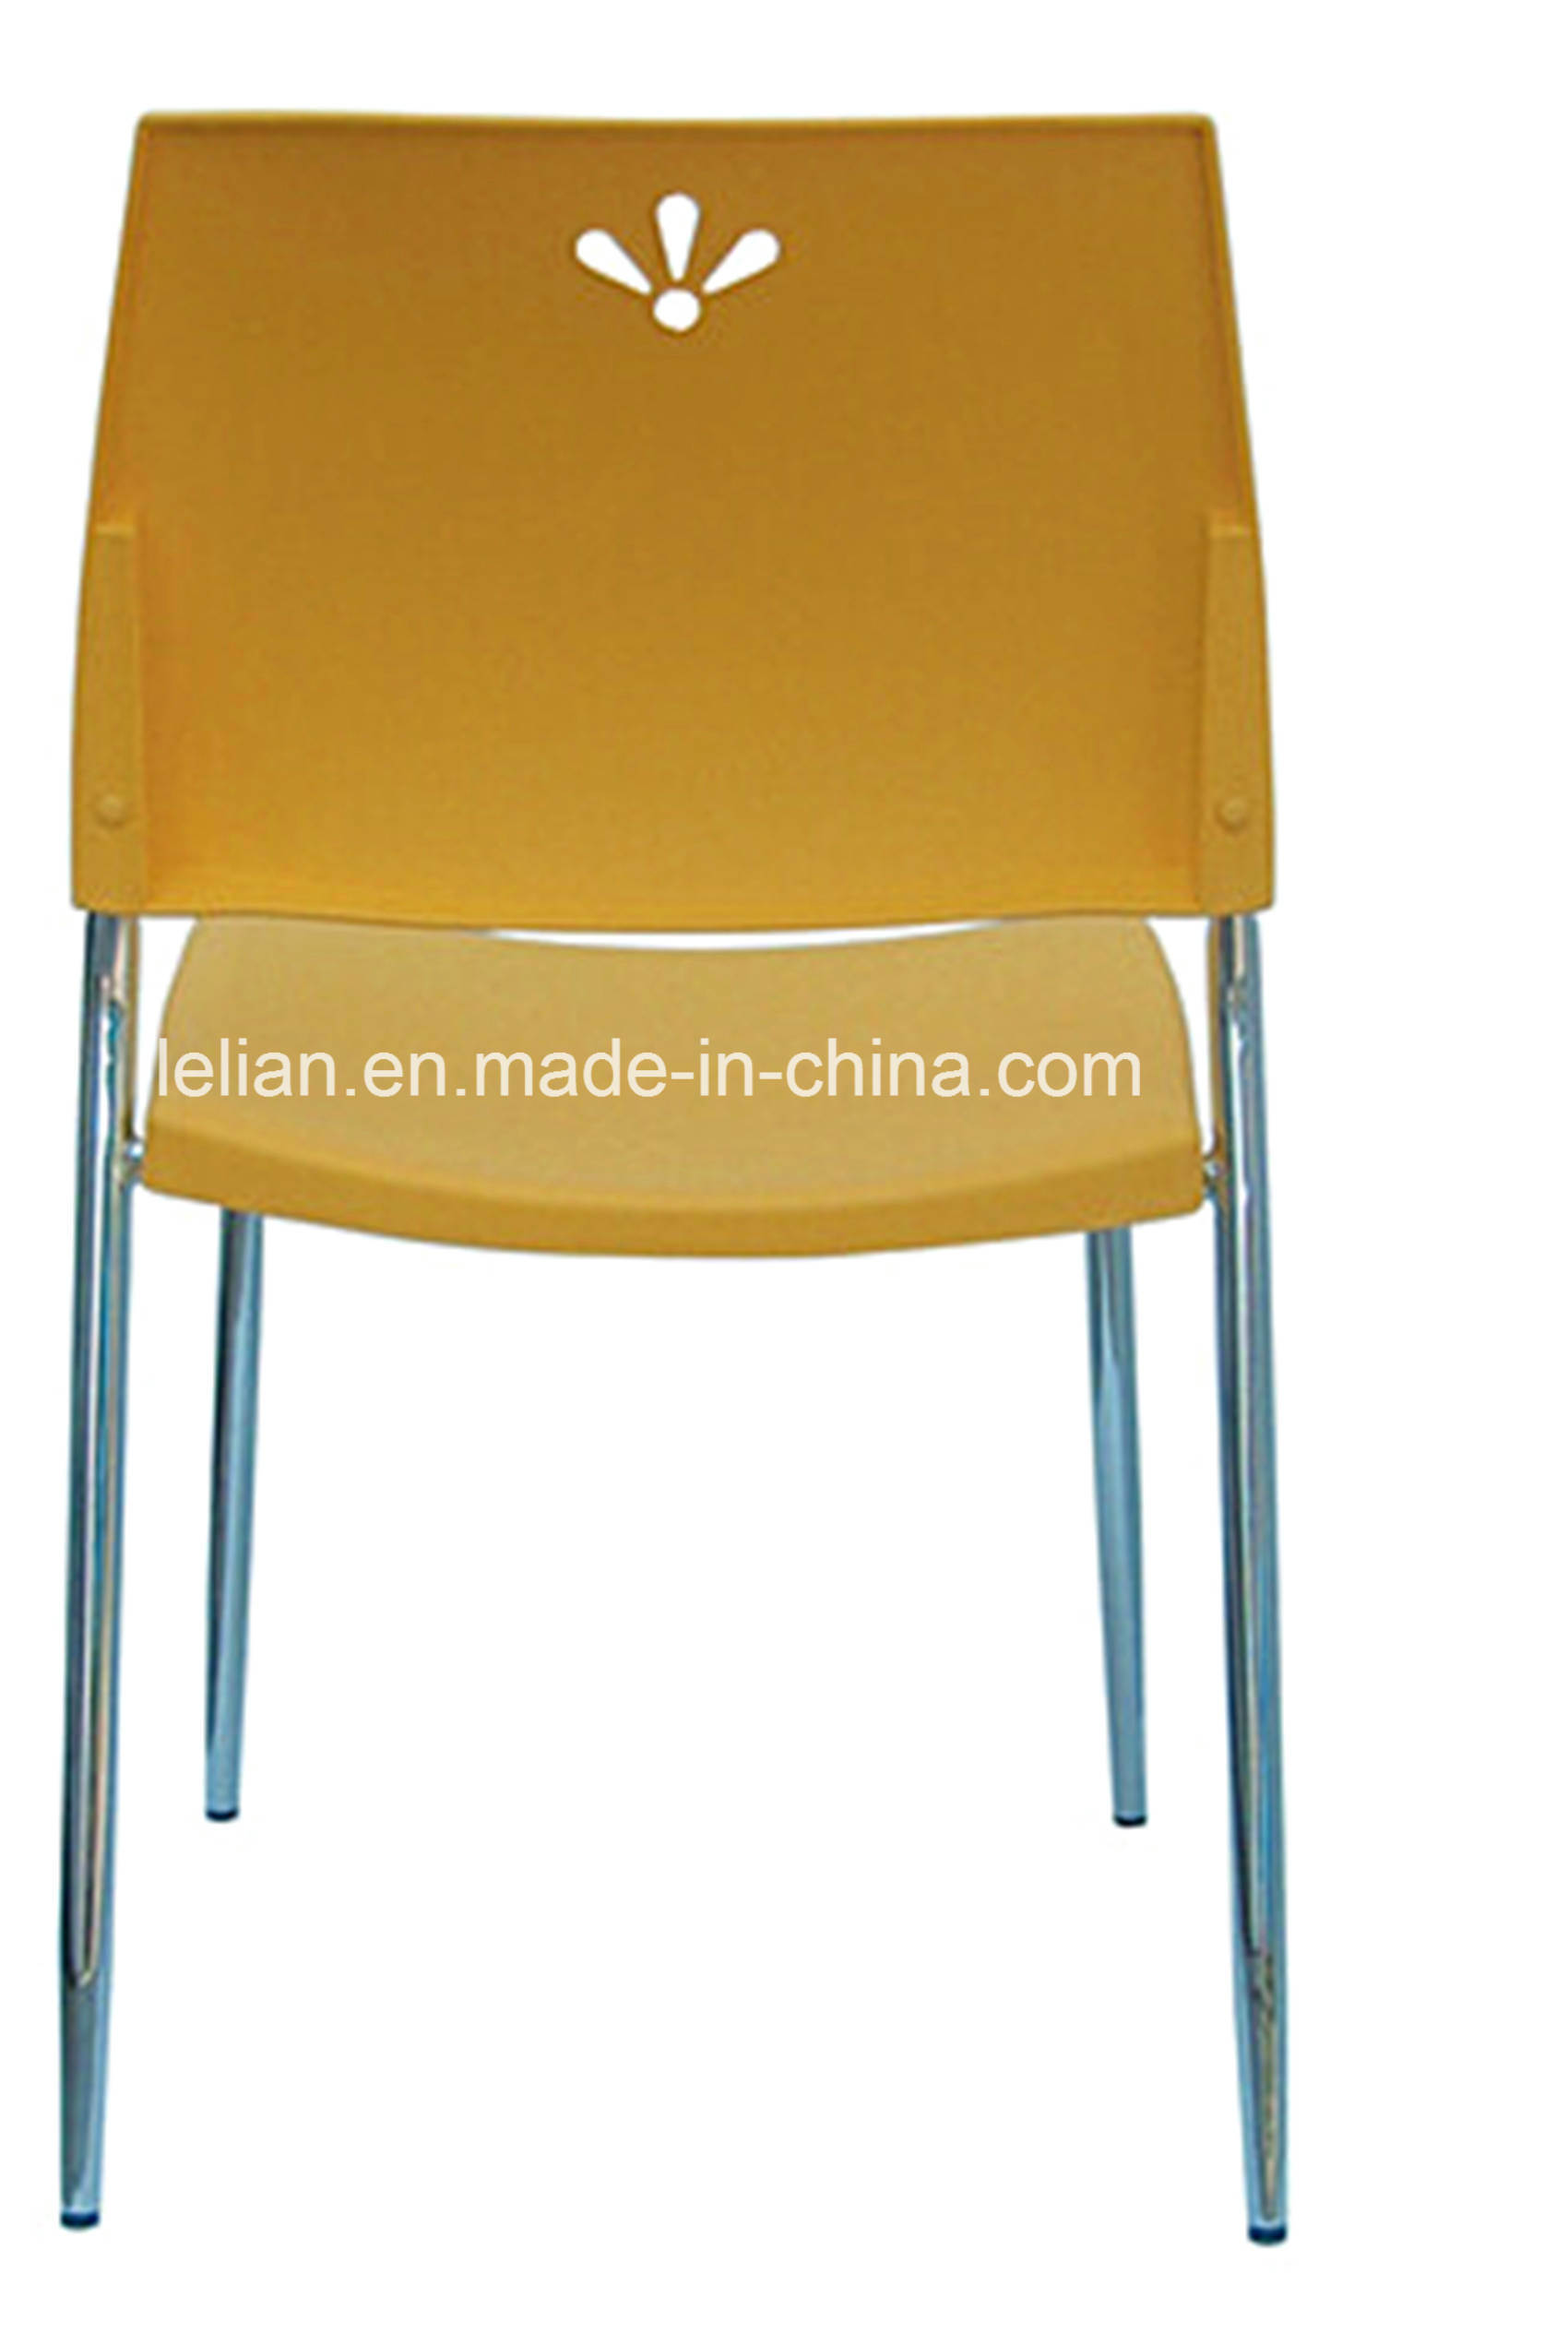 Armless Visitors Stack Chair with Comfortable Medium Back (LL-0029)